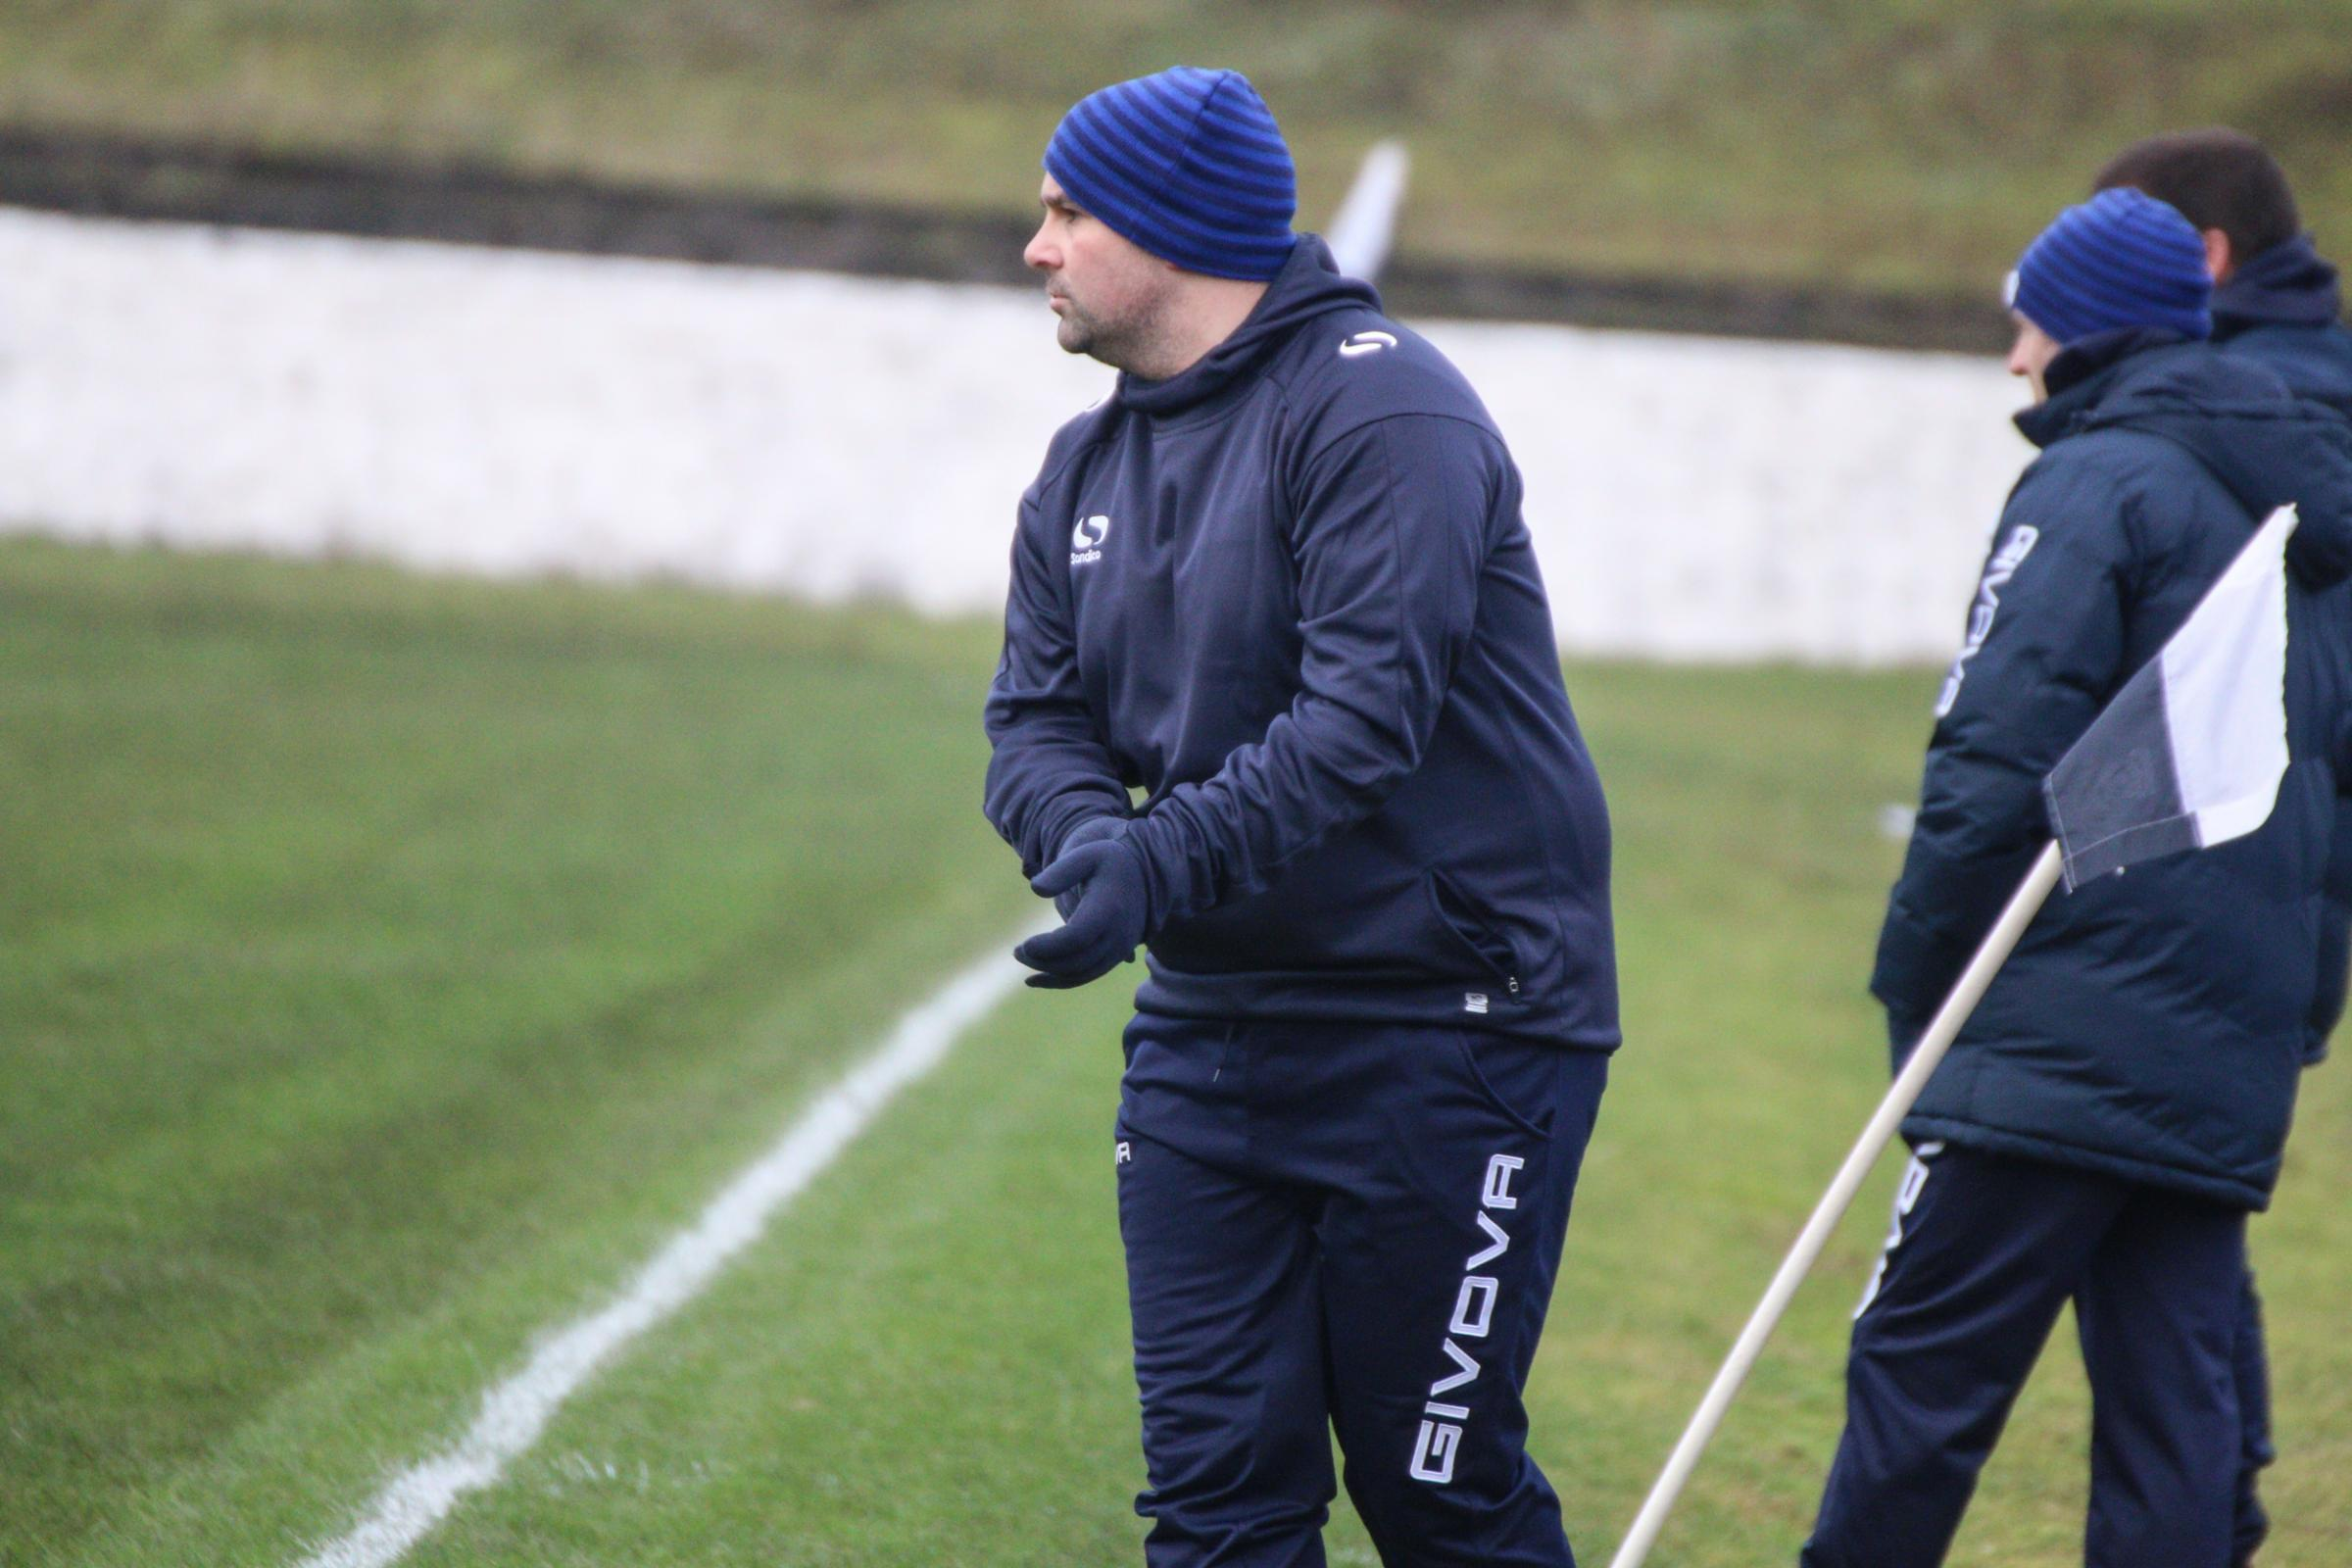 Vale boss Brian Brown was happy with performance